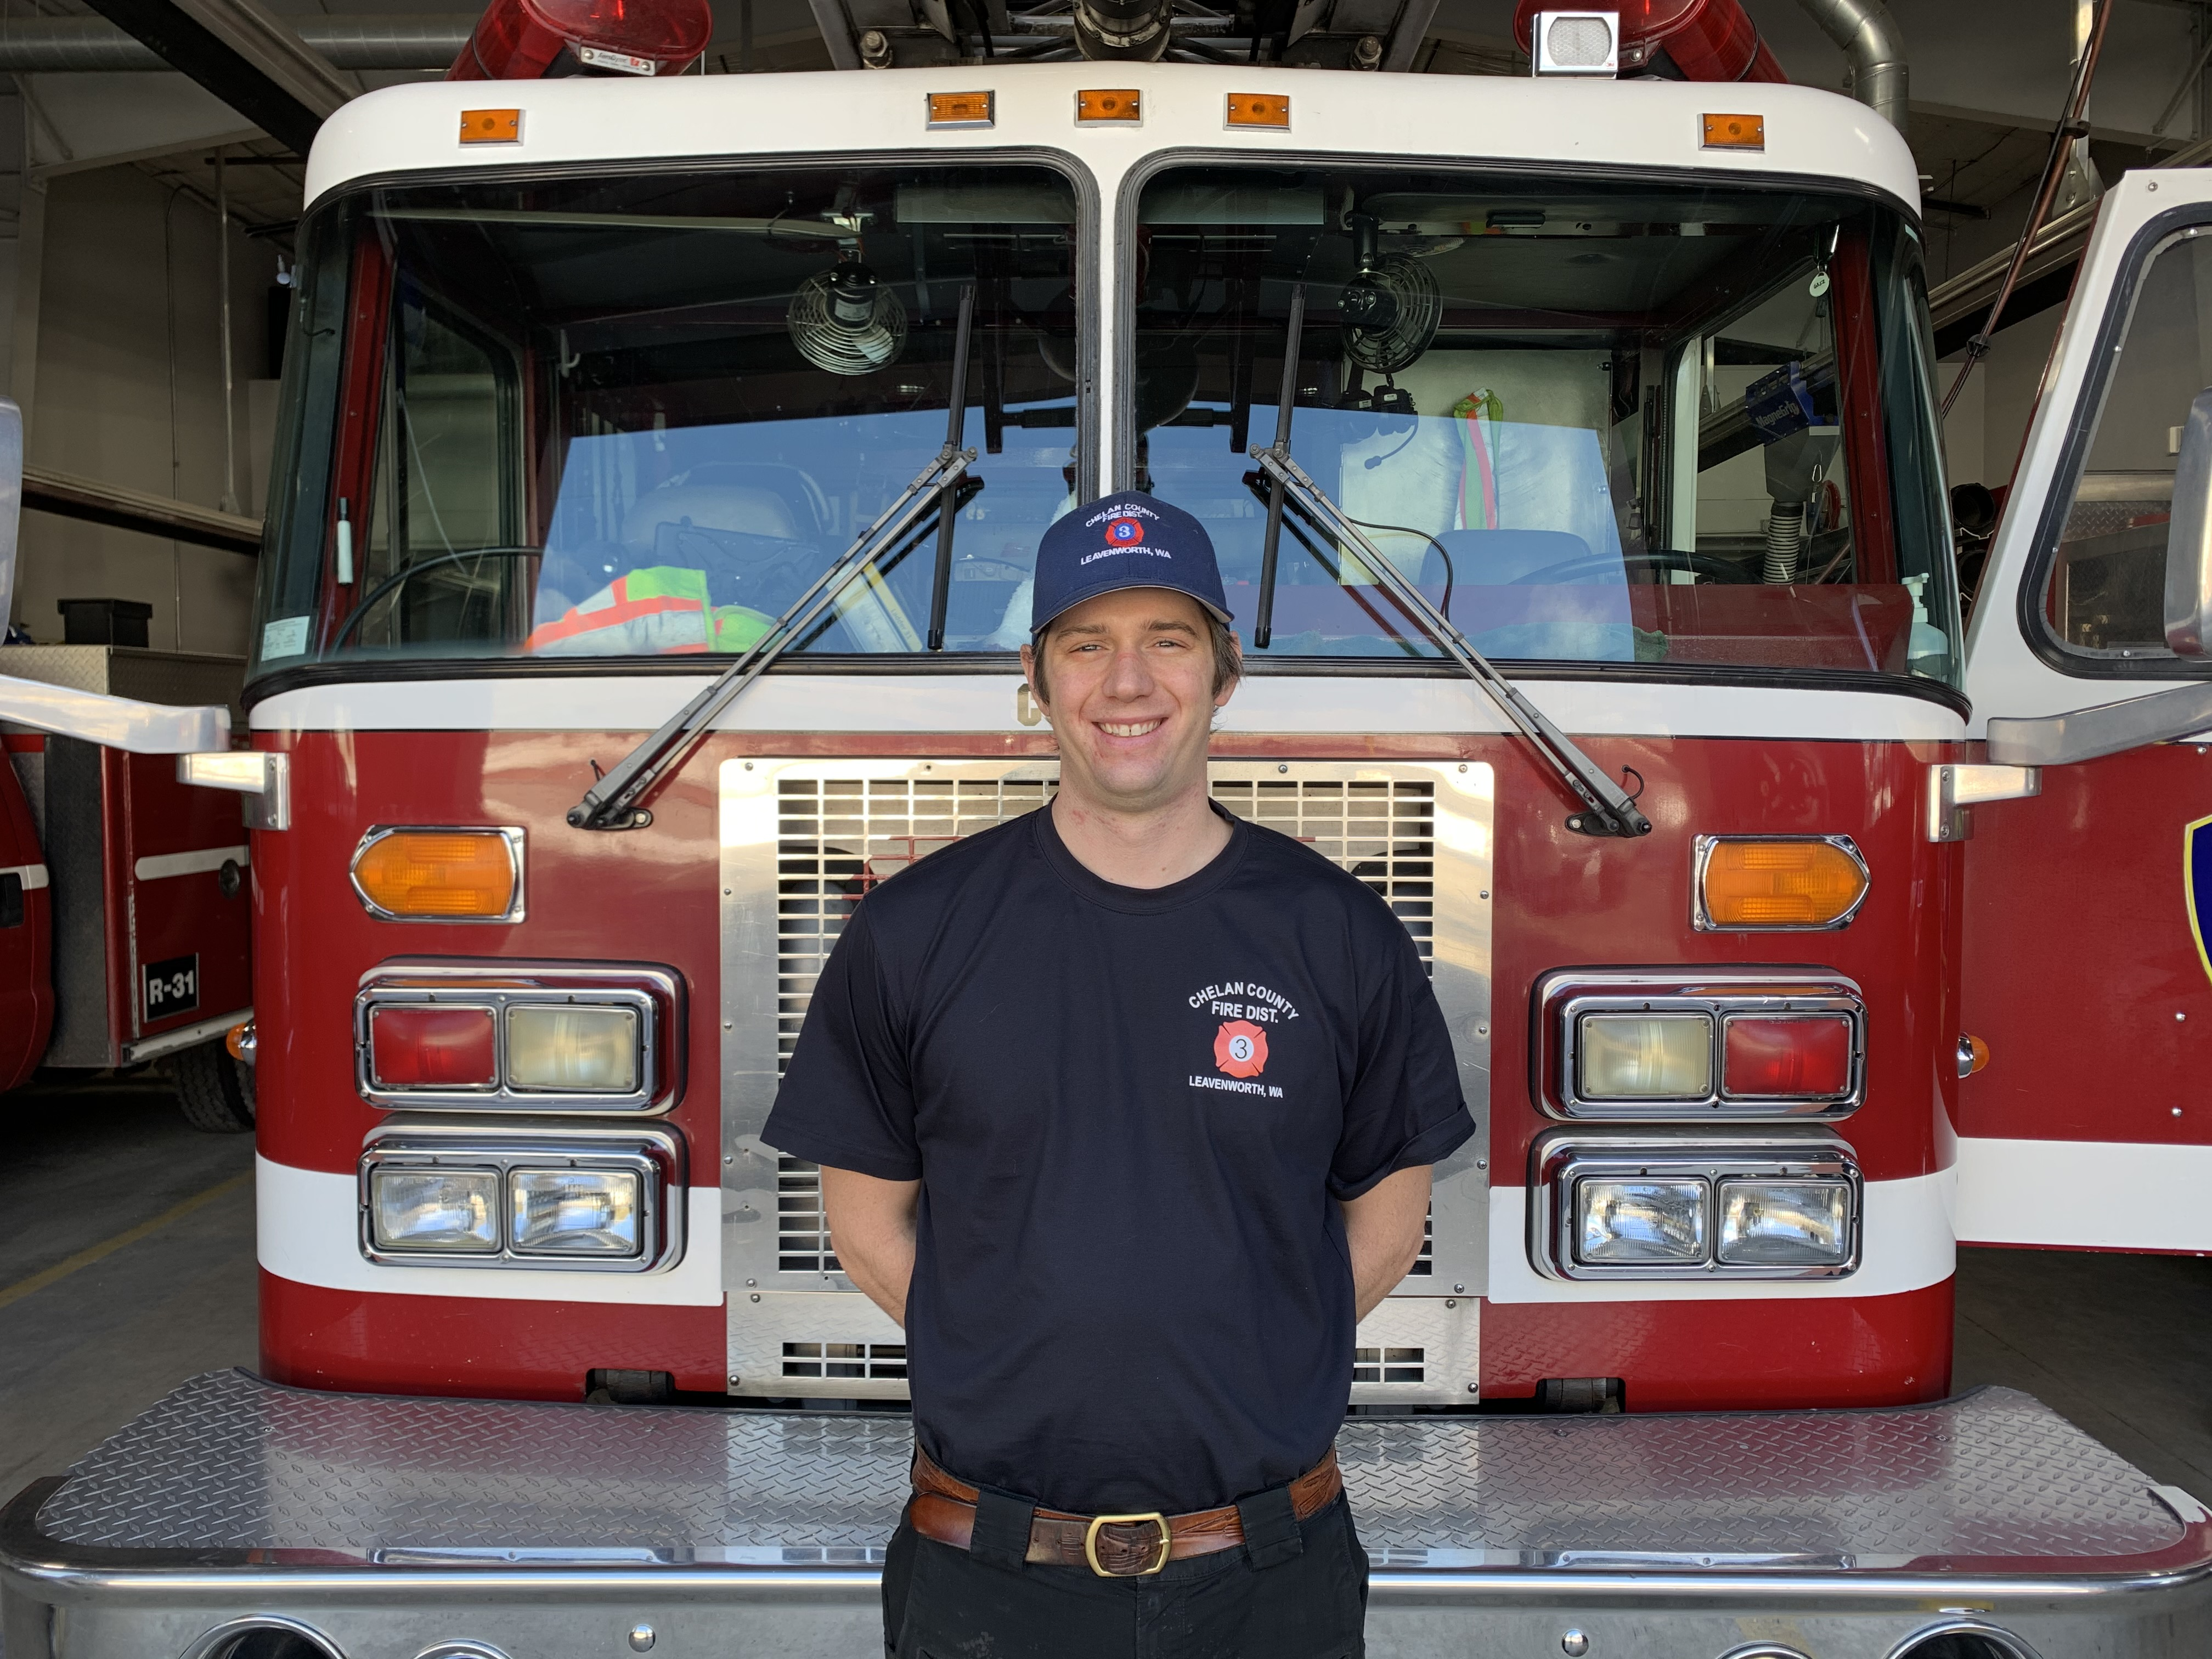 Volunteer Firefighter Danny Bachledor